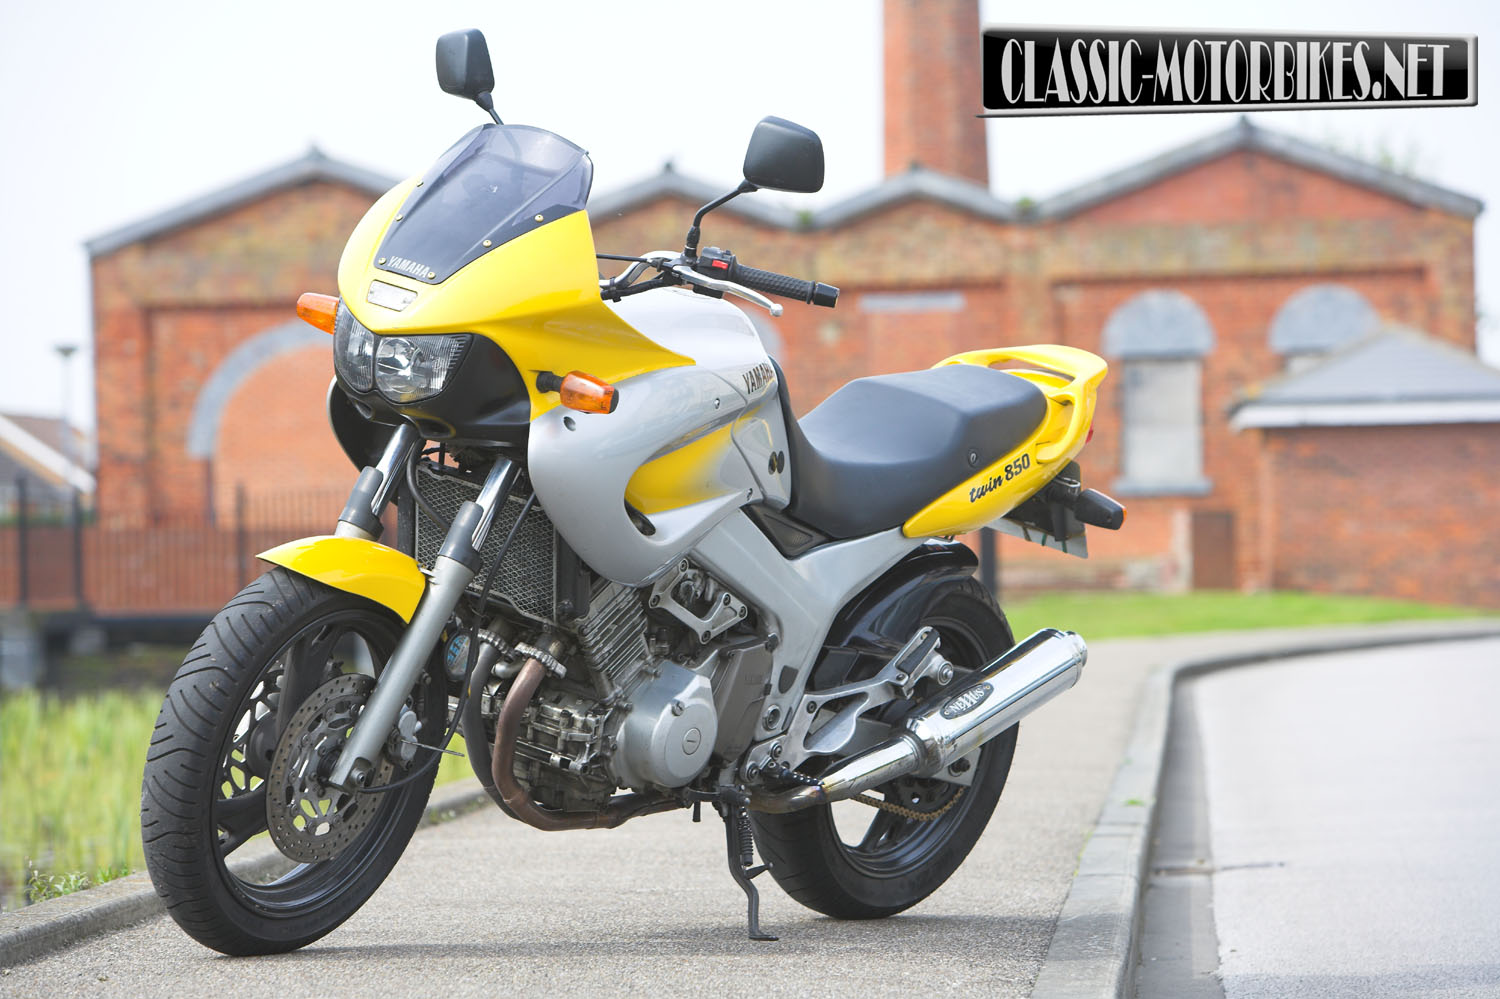 Yamaha Tdm850 The Great All Rounder Classic Motorbikes